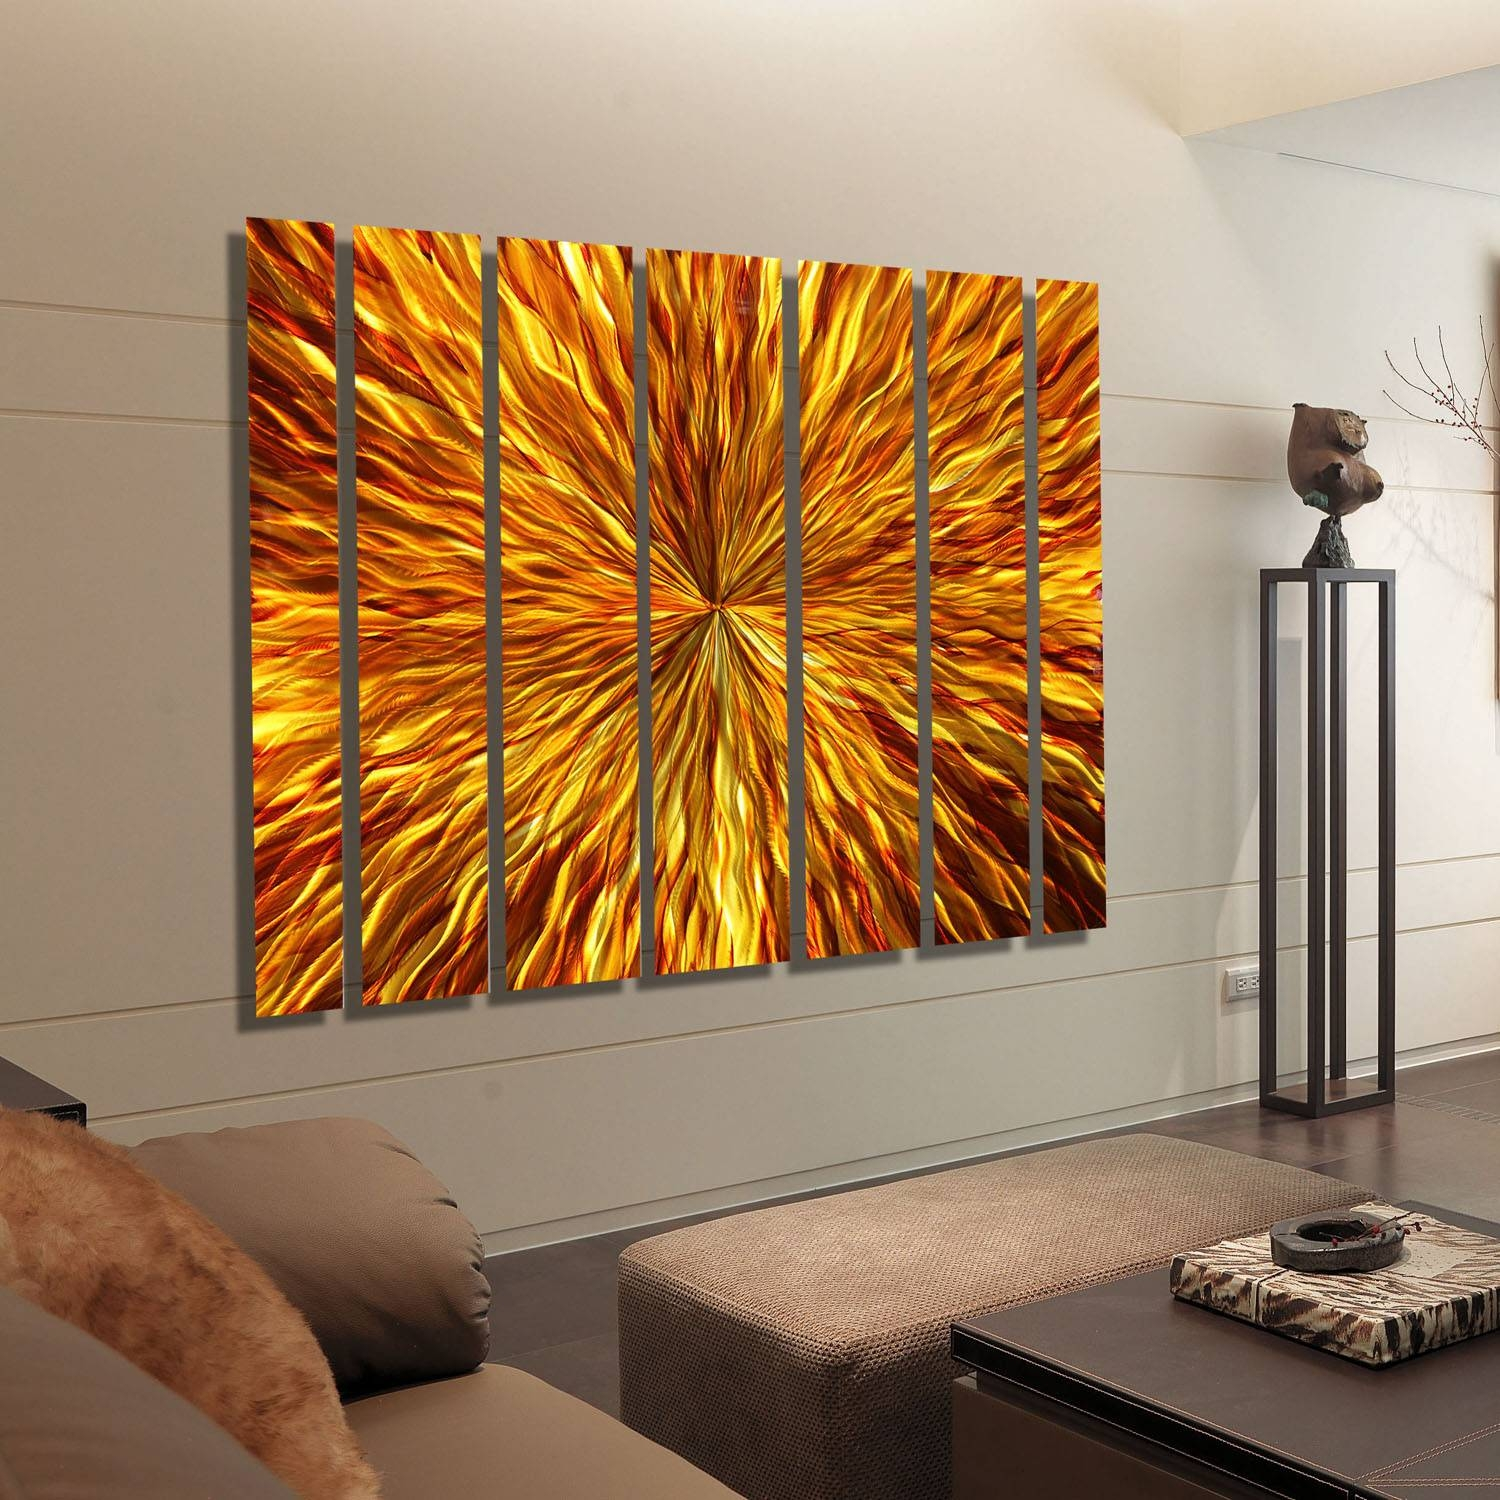 Amber Vortex Xl – Extra Large Modern Metal Wall Artjon Allen In Most Current Abstract Metal Wall Art (View 3 of 20)